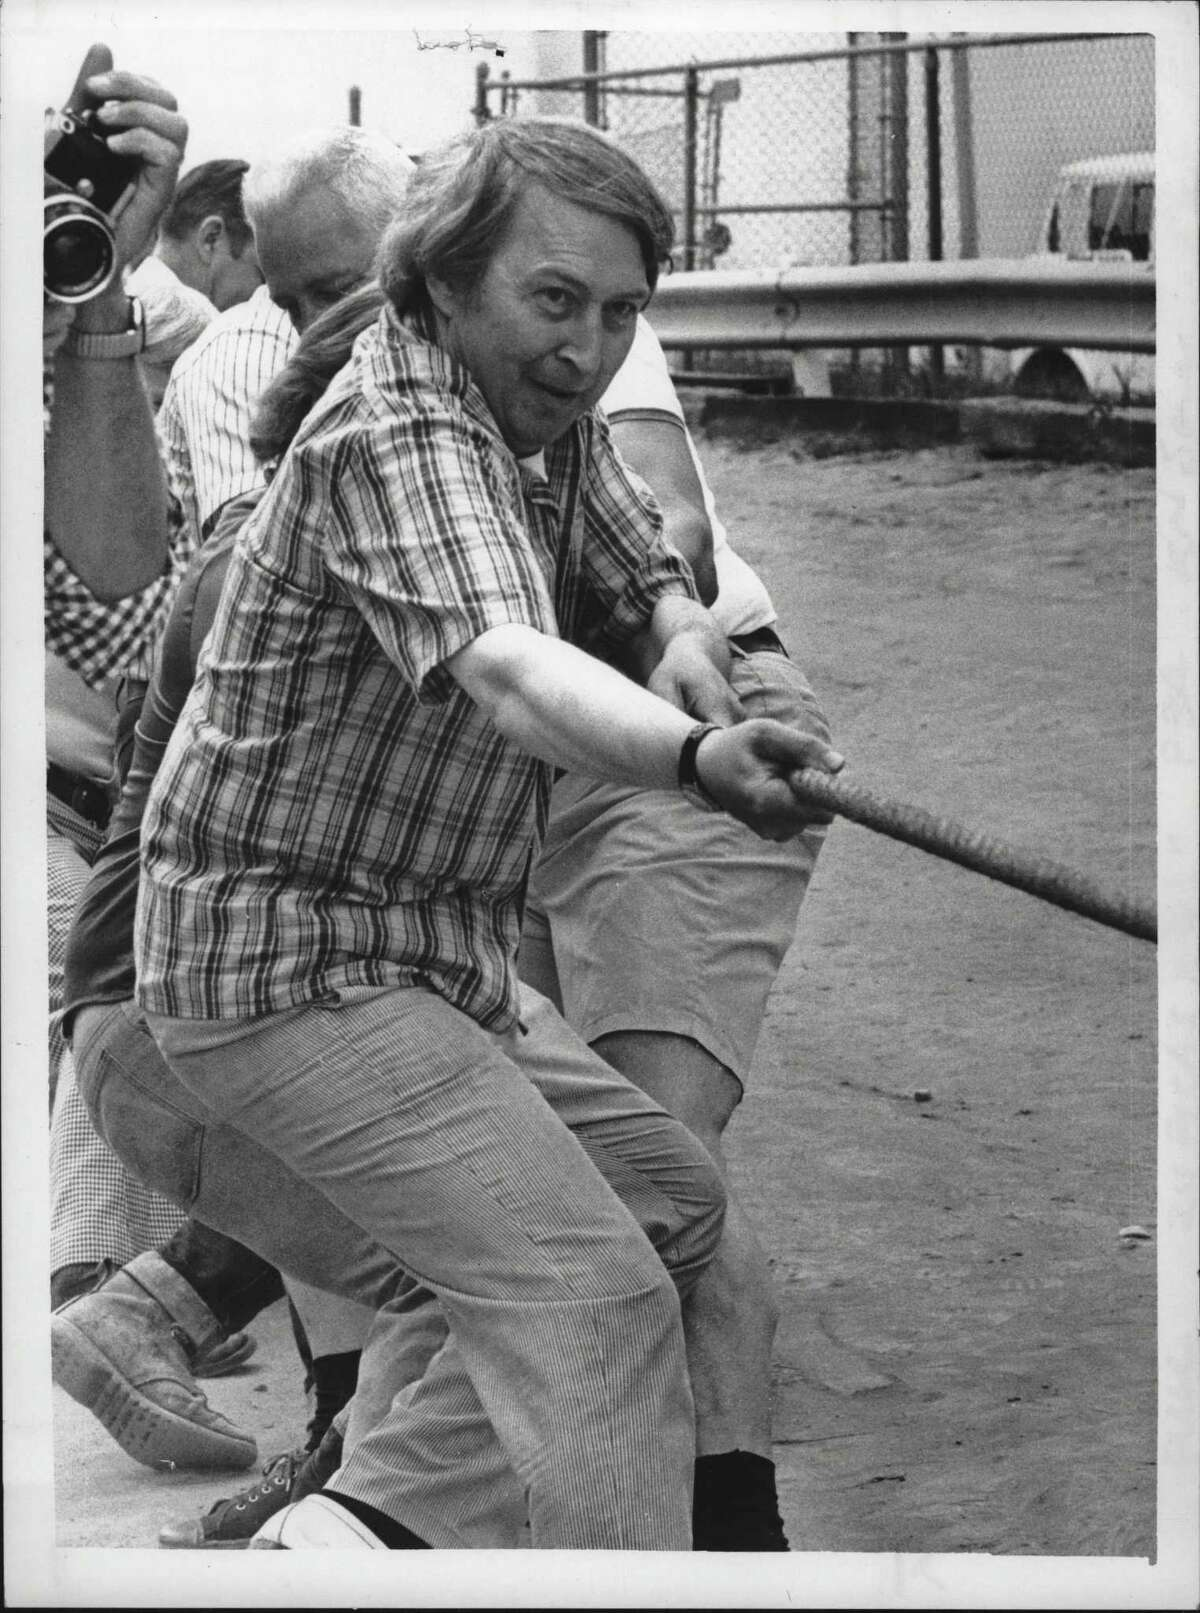 Raymond Walton Plays Tug-of-War, Saratoga County Fair. Saratoga County Fair. Raymond Watkin. Mayors Team - losers. July 28, 1977 (Paul Kniskern/Times Union Archive)